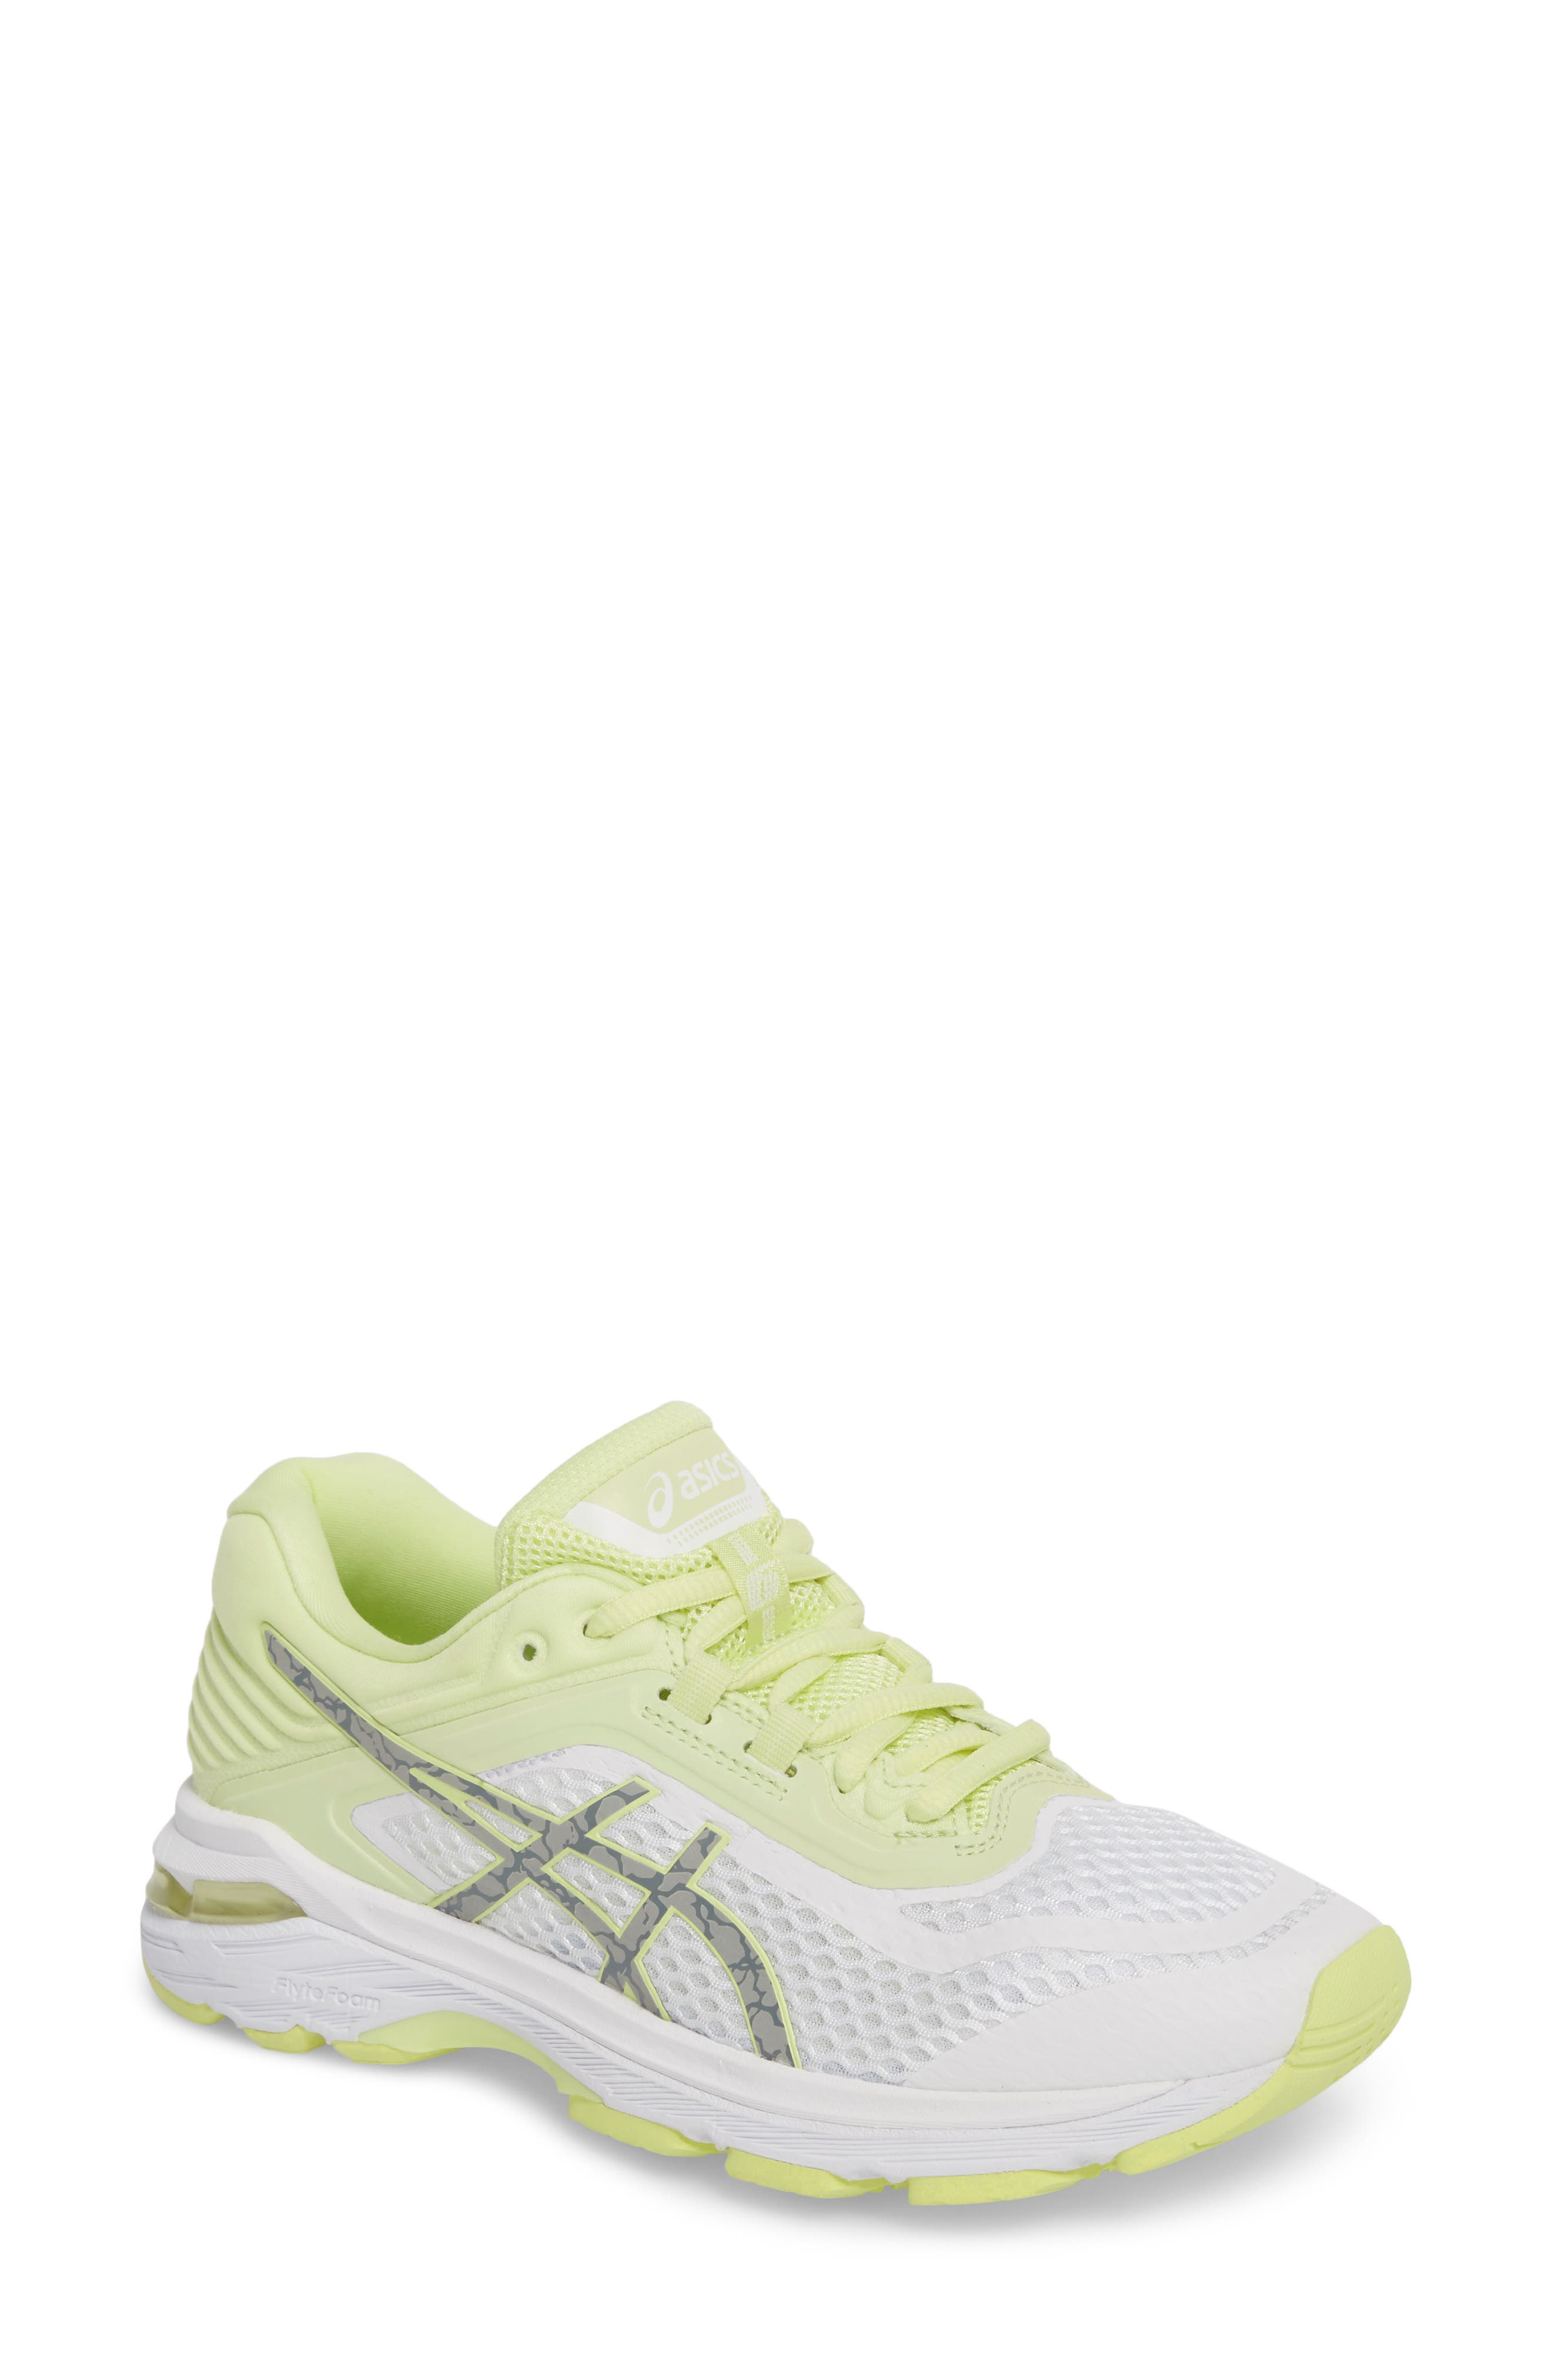 GT-2000 6 Running Shoe,                             Main thumbnail 1, color,                             White/ Silver/ Limelight